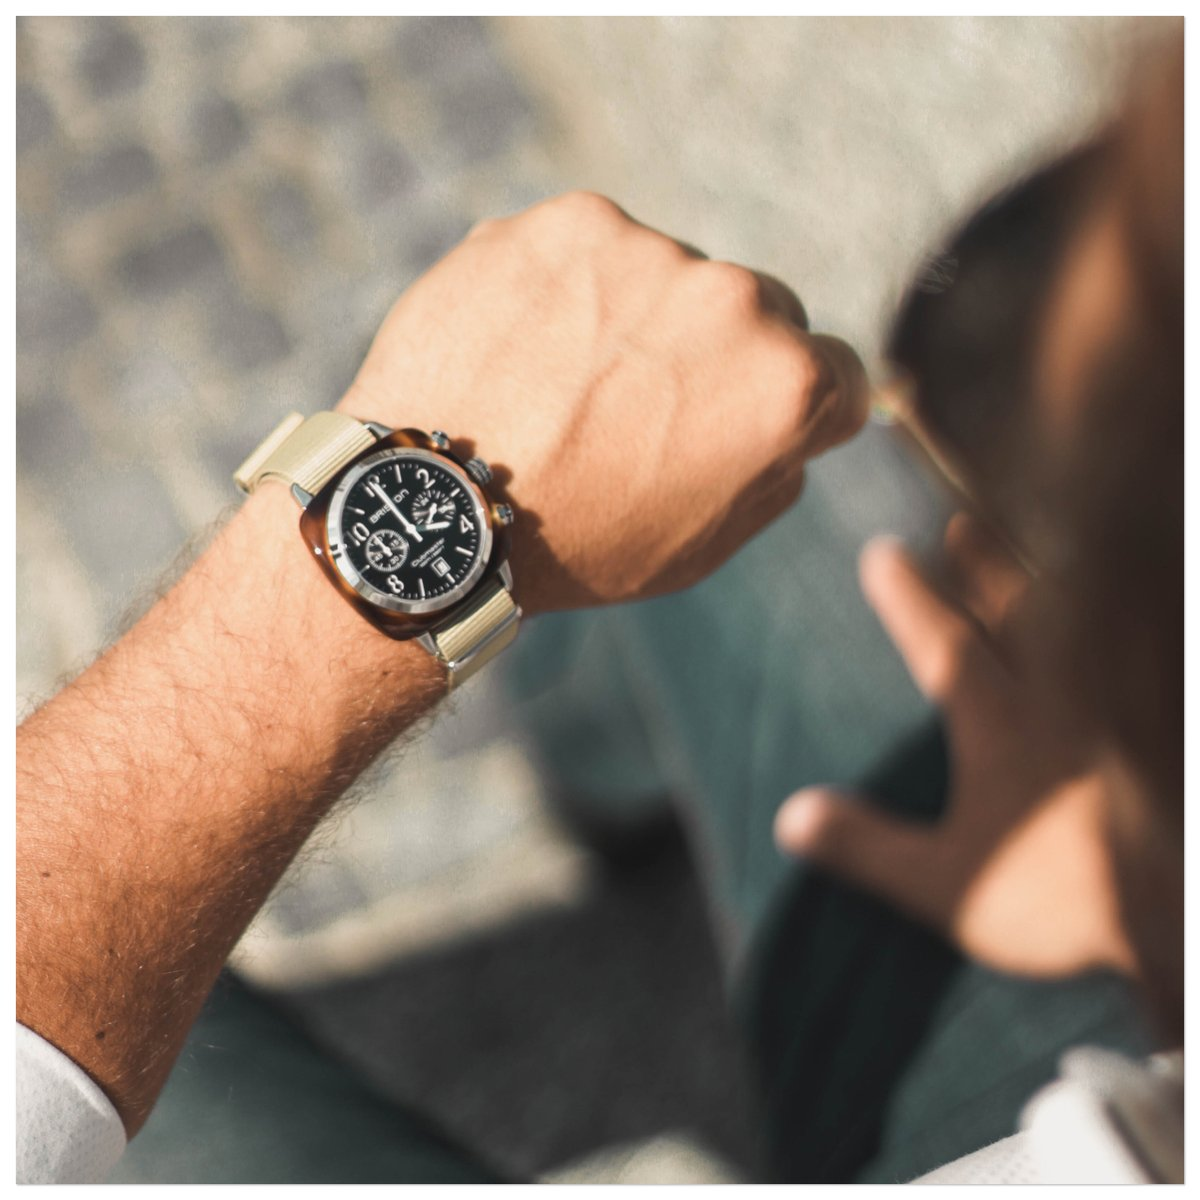 Meeting time 😎  ⌚ Clubmaster Classic Acetate with black dial 📷 @brunoaz19  #bristonwatches #briston #mybriston #watches #watch #itwatch #menstyle #casual #lifestyle #natostrap https://t.co/xFJHjGnhk4